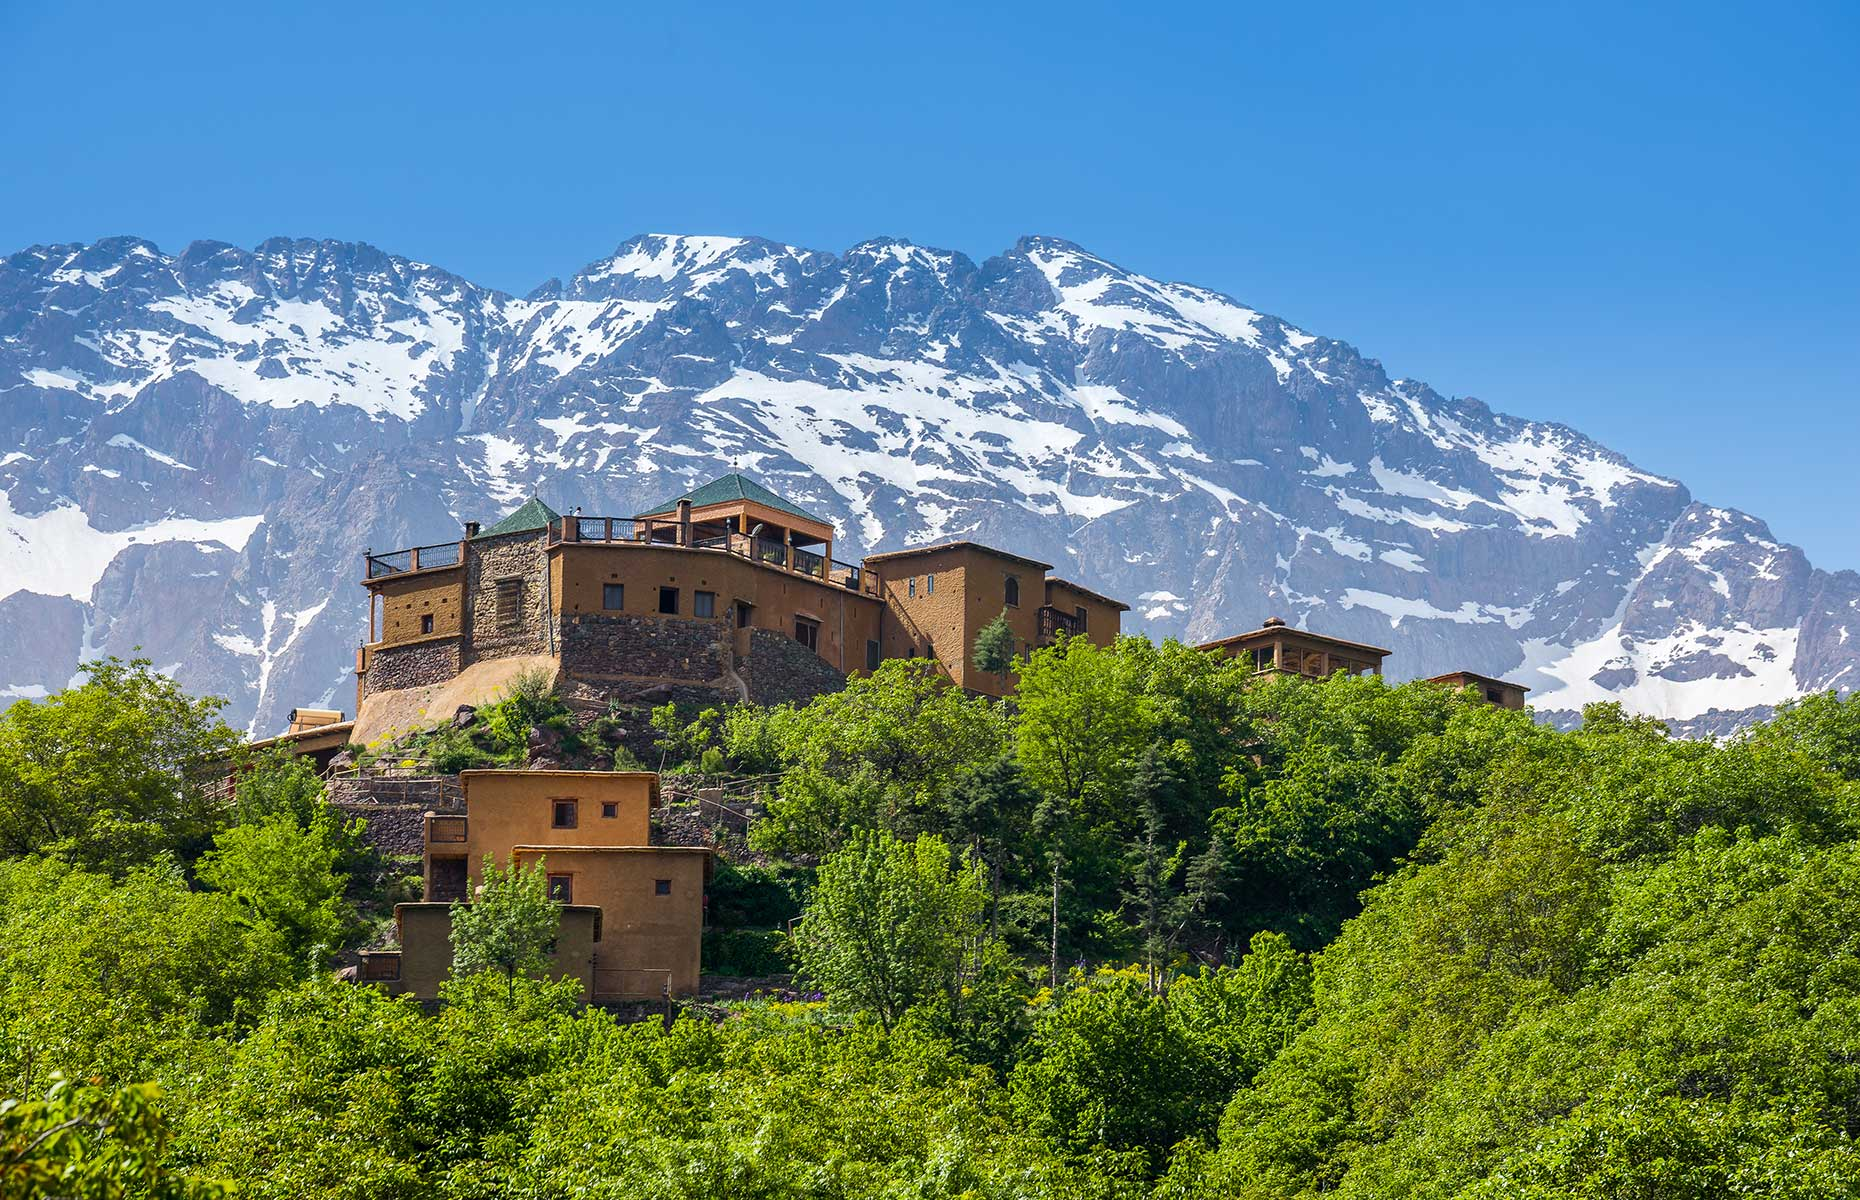 The Atlas Mountains are a must-see day trip from Marrakech